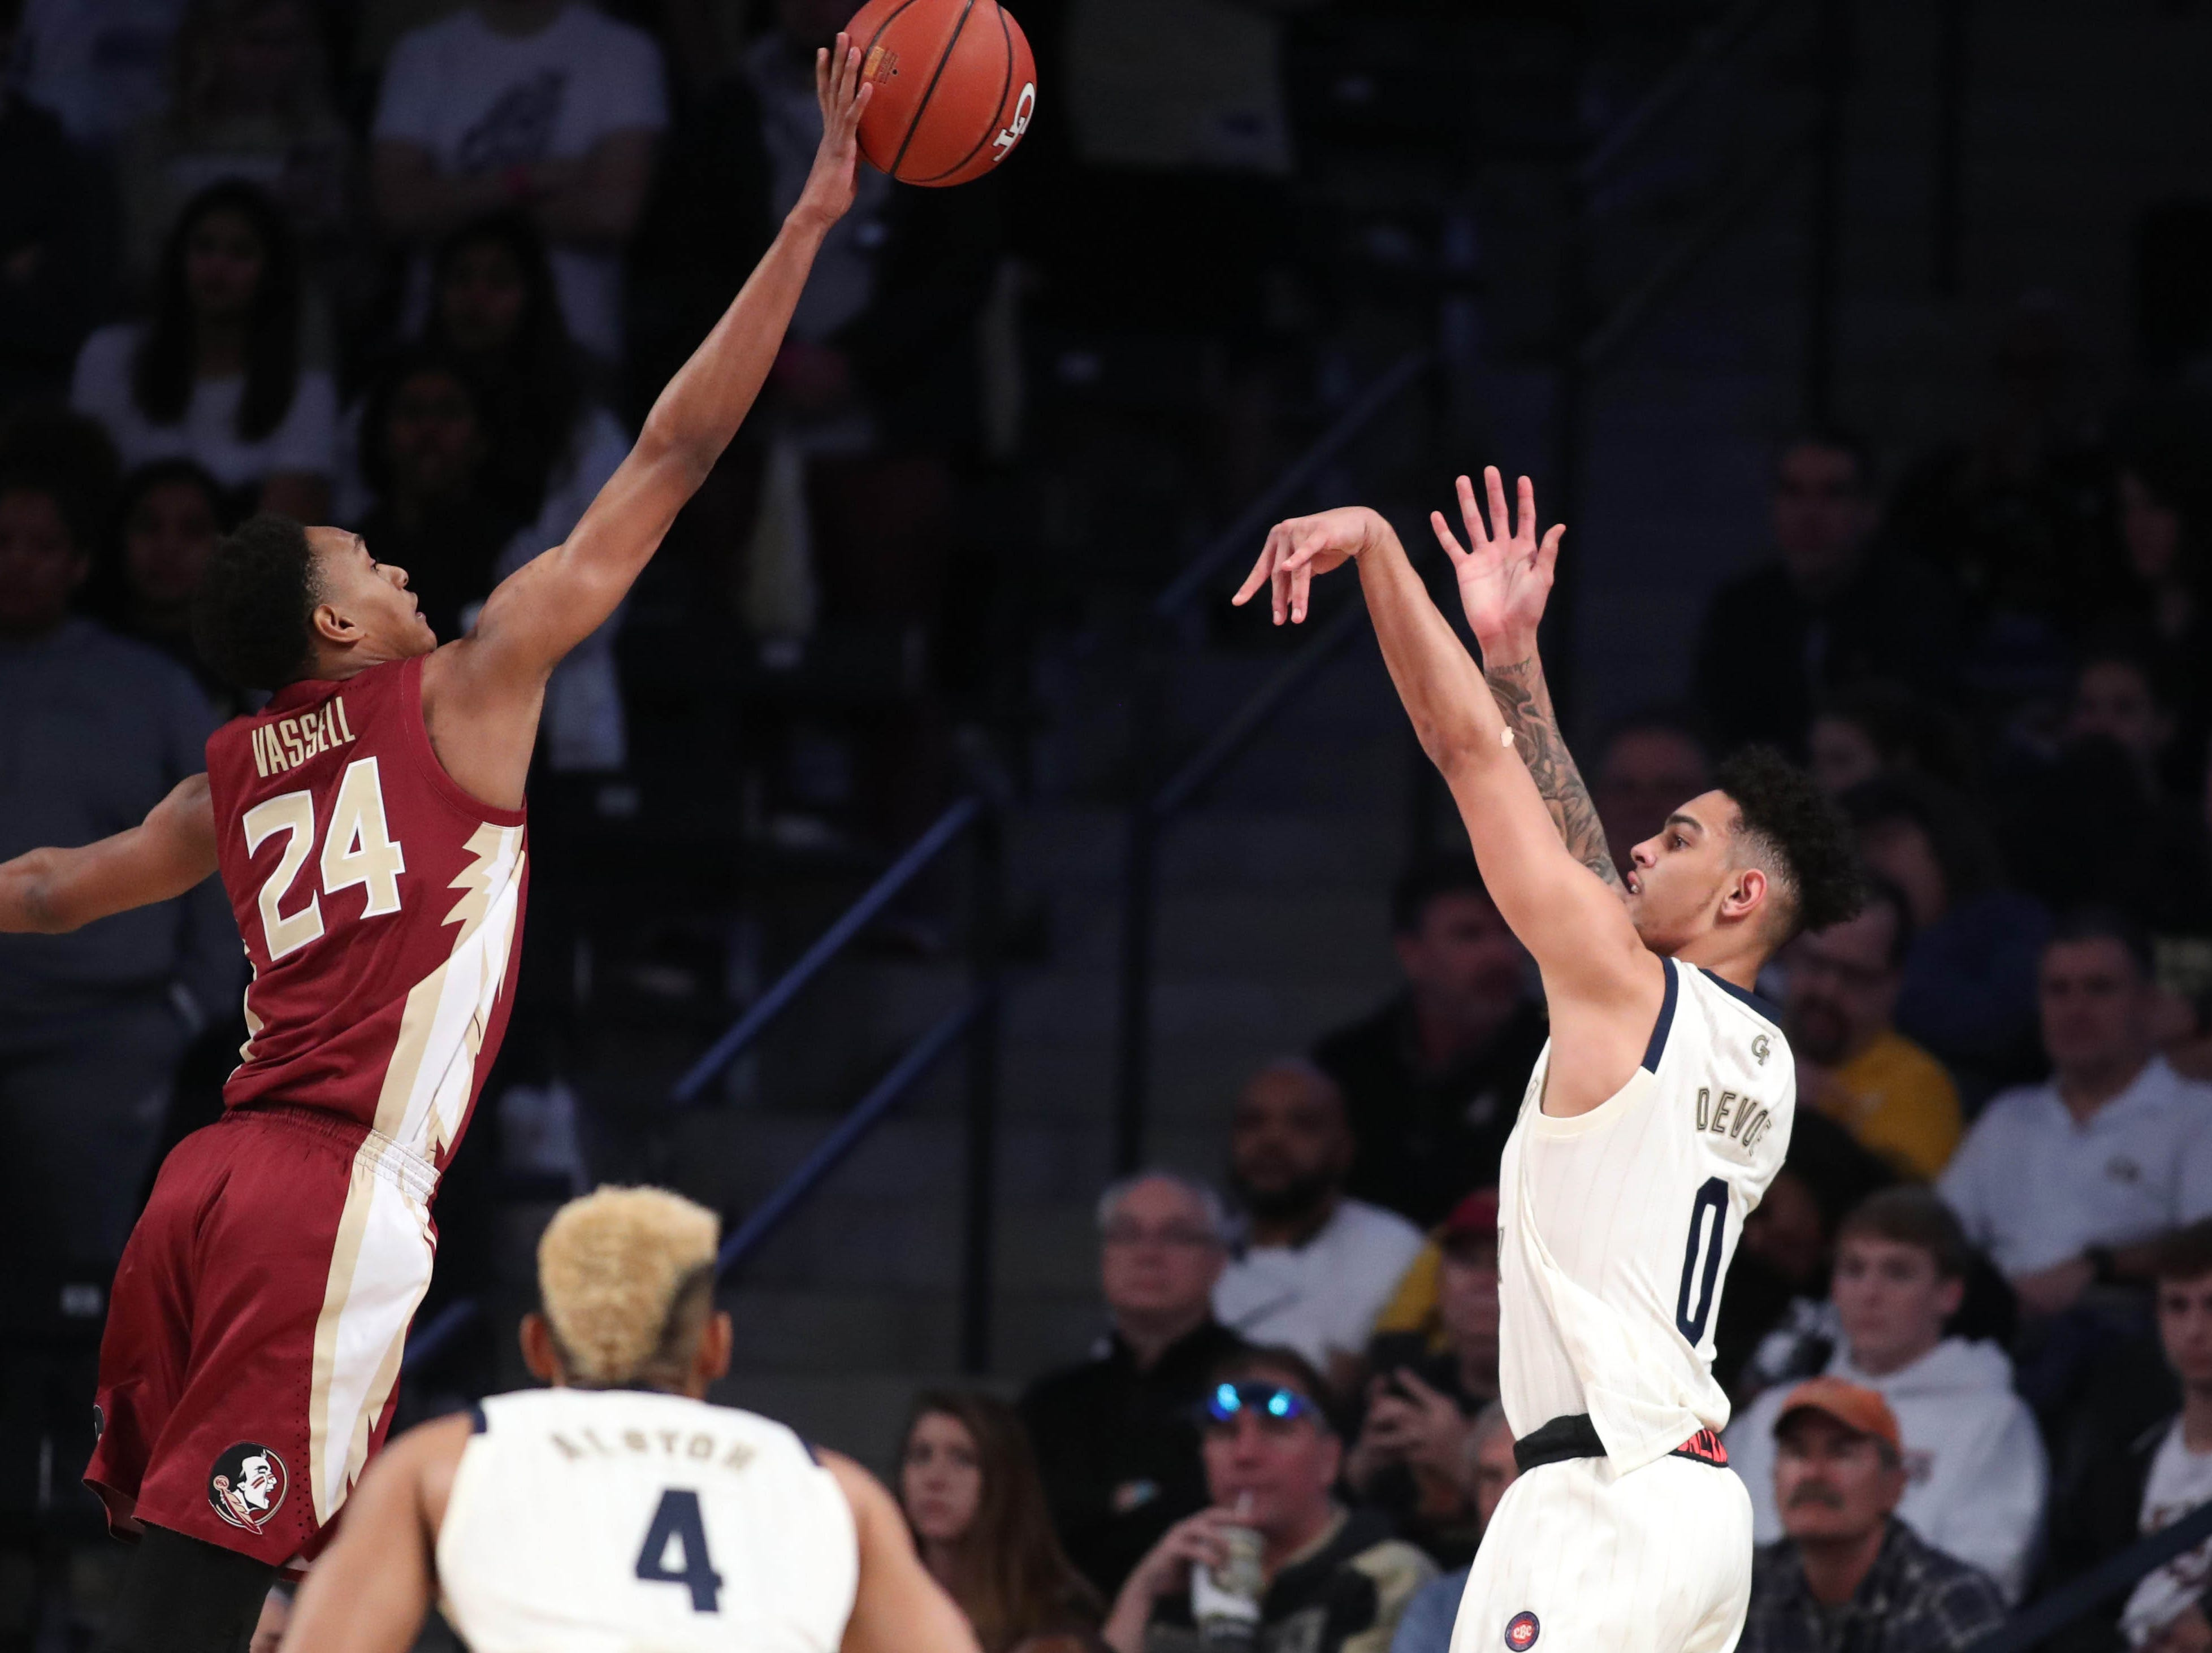 Feb 16, 2019; Atlanta, GA, USA; Florida State Seminoles guard Devin Vassell (24) blocks a shot attempt by Georgia Tech Yellow Jackets guard Michael Devoe (0) in the first half at McCamish Pavilion. Mandatory Credit: Jason Getz-USA TODAY Sports